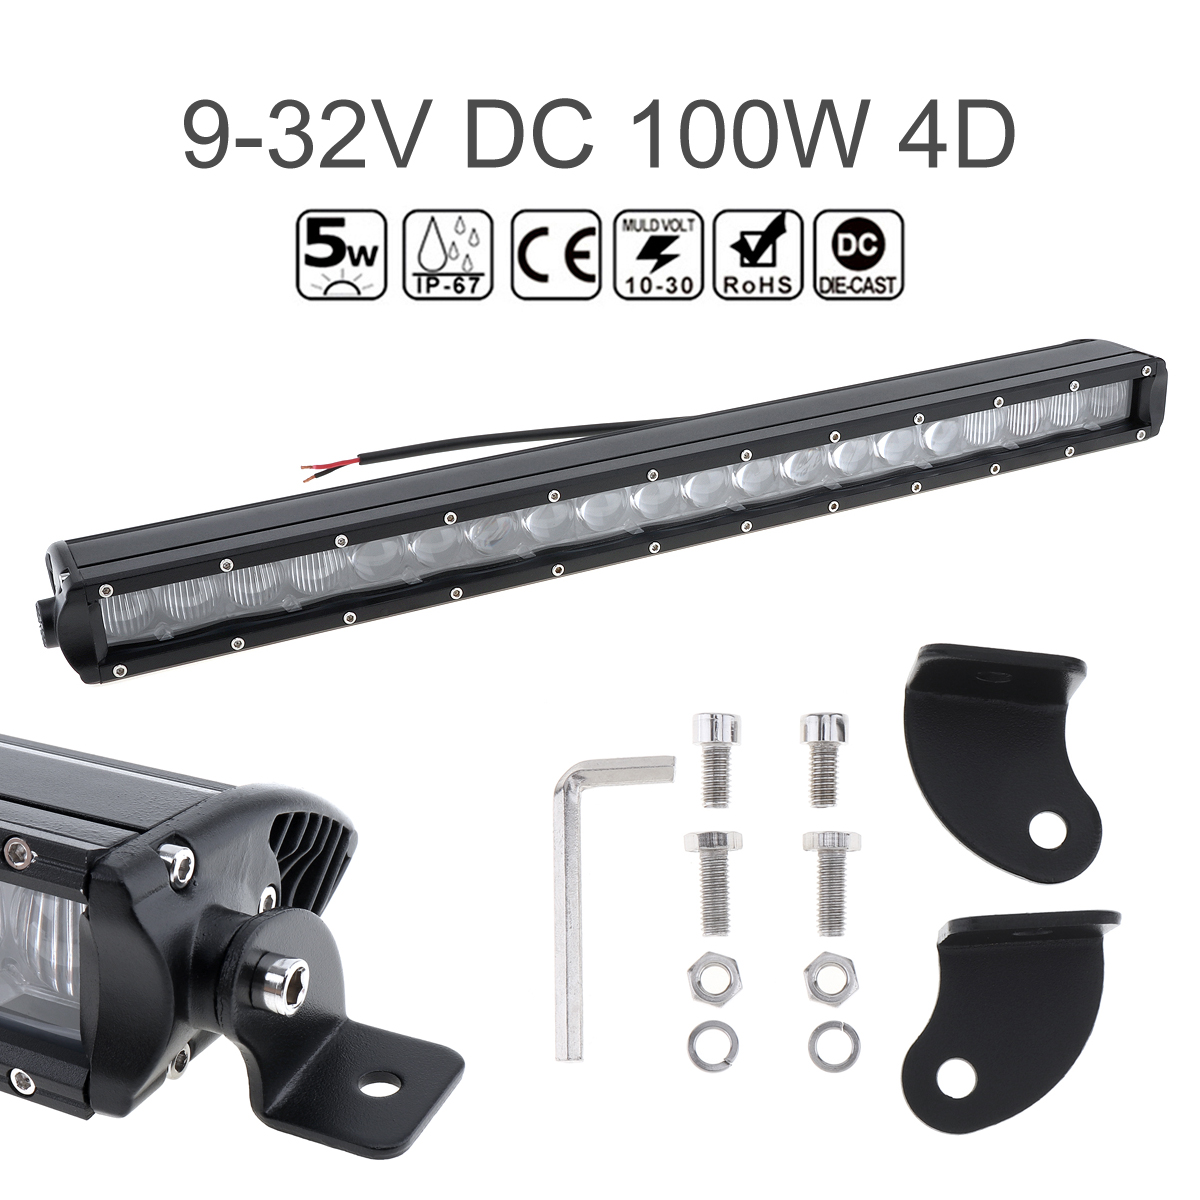 20 10000 LM 100W Waterproof Car Straight LED Worklight Bar 20x4D Combo Offroad Light Driving Lamp for Truck SUV 4X4 4WD ATV20 10000 LM 100W Waterproof Car Straight LED Worklight Bar 20x4D Combo Offroad Light Driving Lamp for Truck SUV 4X4 4WD ATV